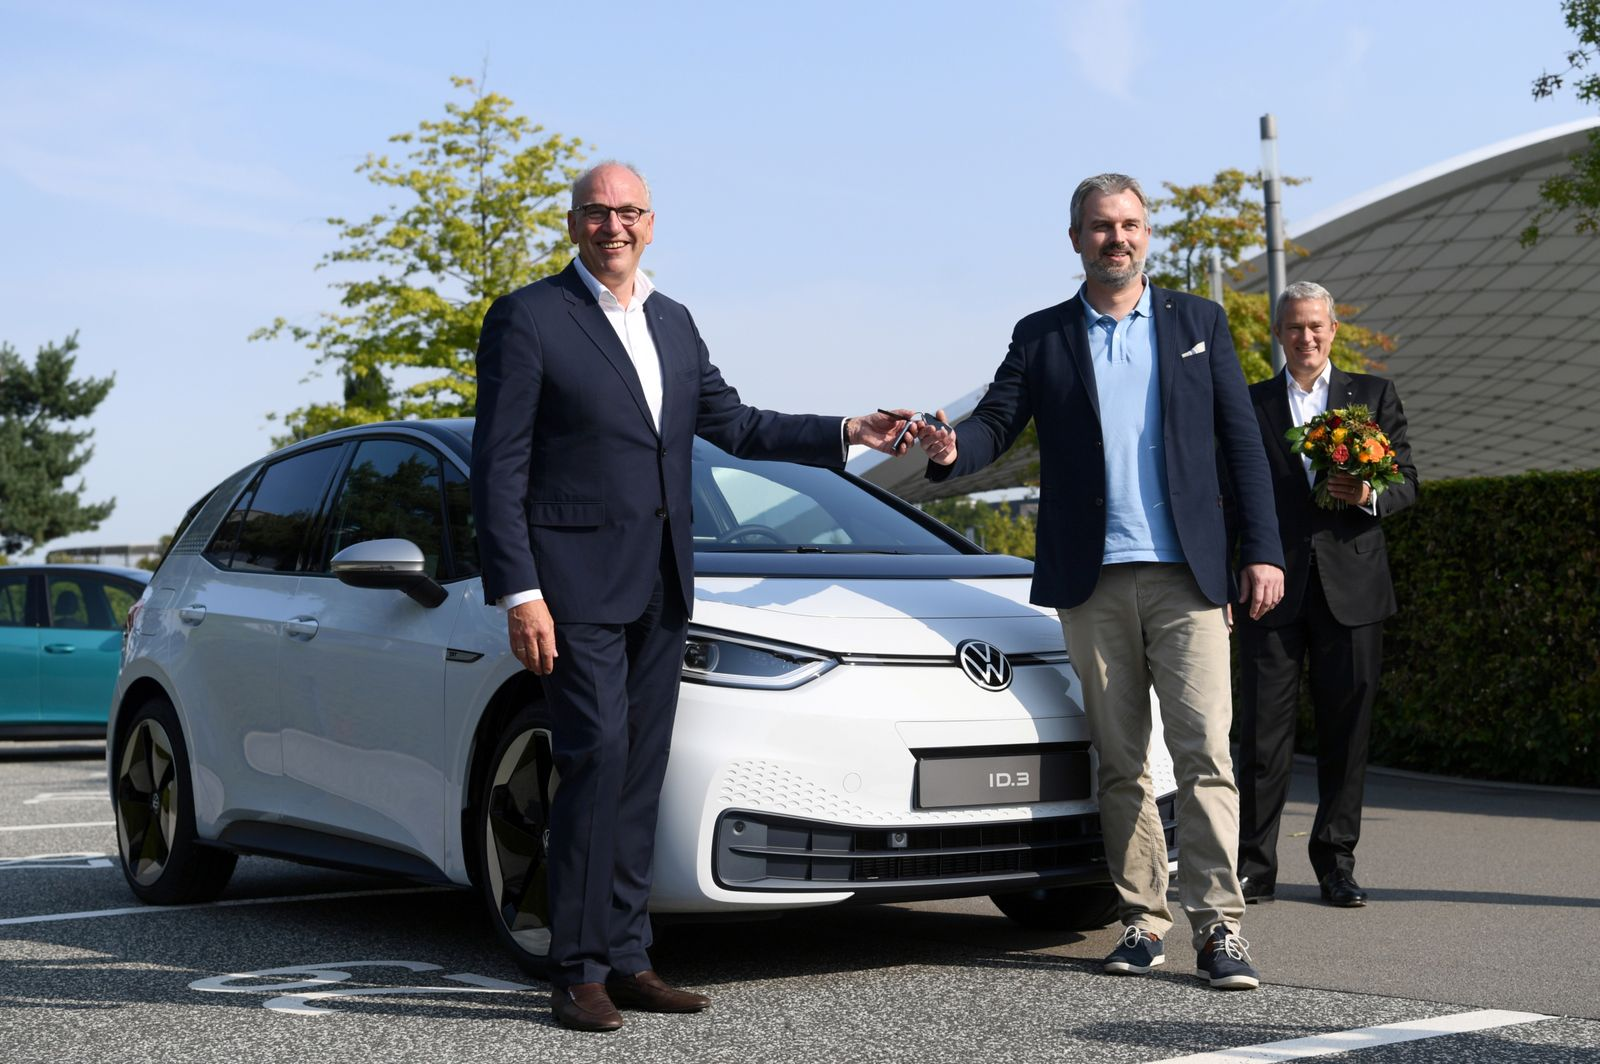 German automaker Volkswagen delivers its new electric car, the ID.3 in Wolfsburg